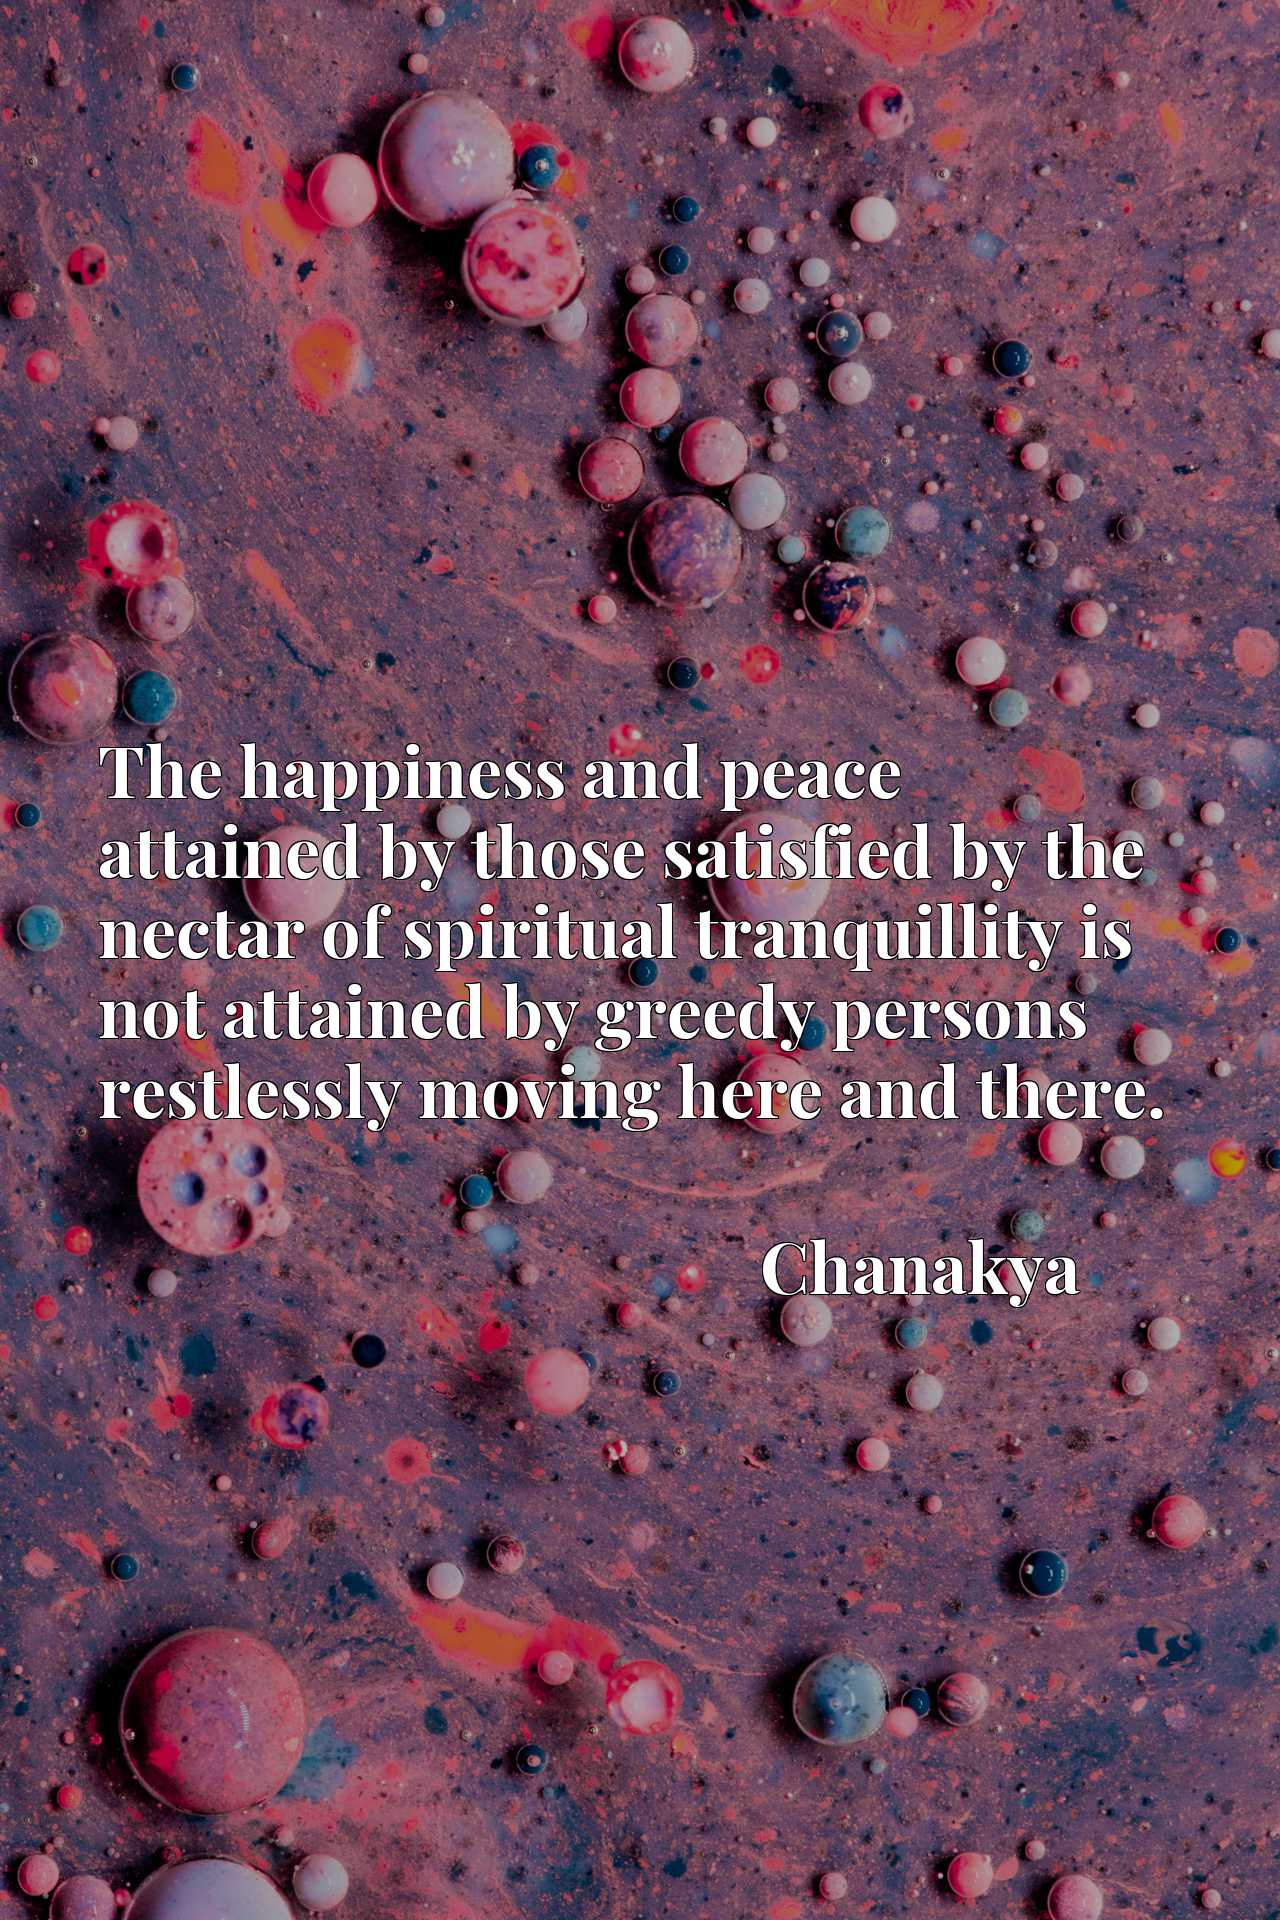 The happiness and peace attained by those satisfied by the nectar of spiritual tranquillity is not attained by greedy persons restlessly moving here and there.